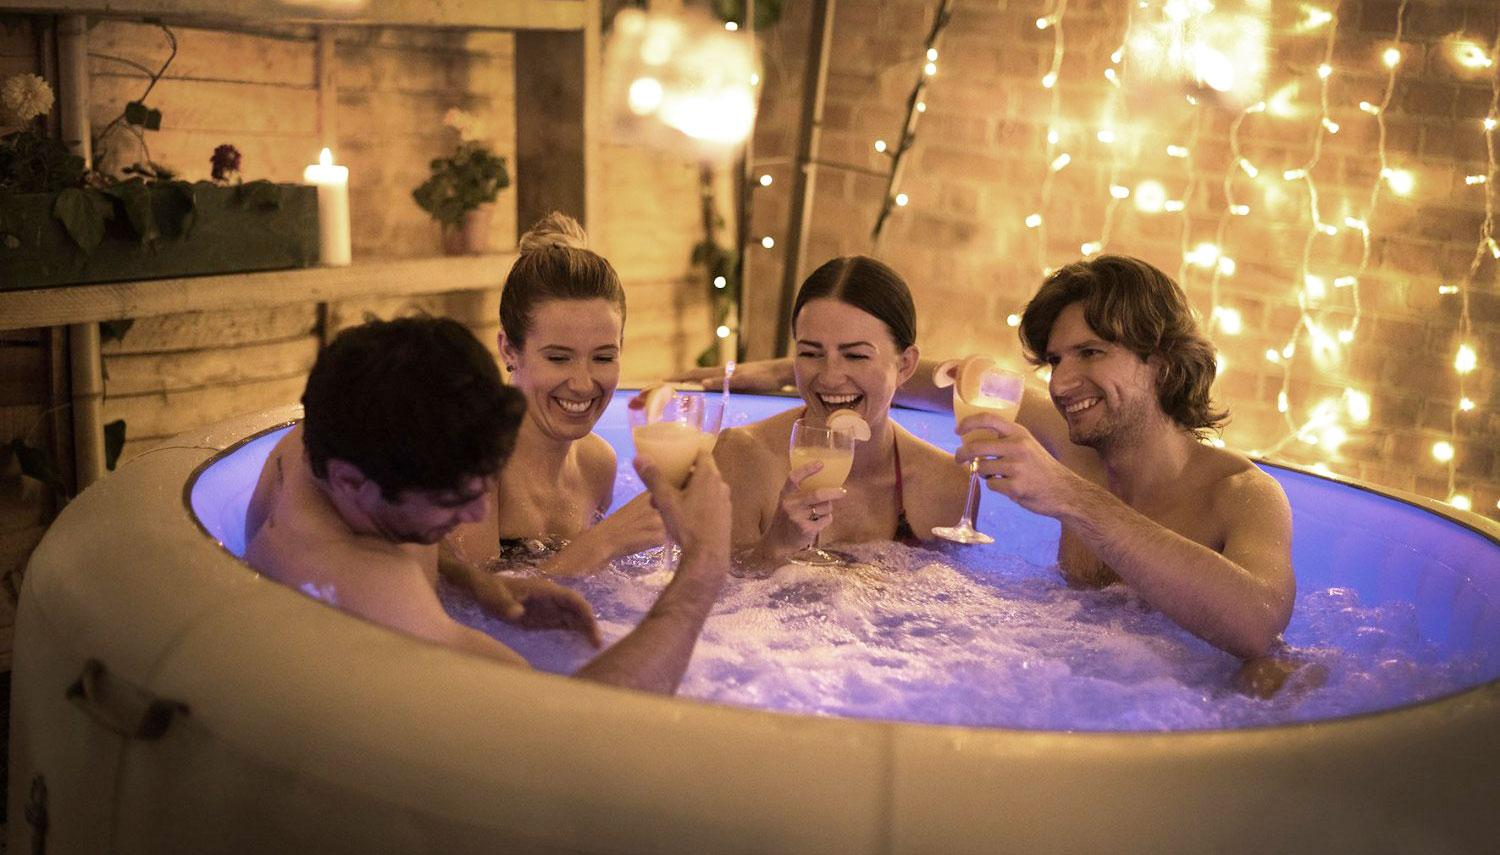 6 Seater Inflatable Hot Tub - South East Hot Tub Hire